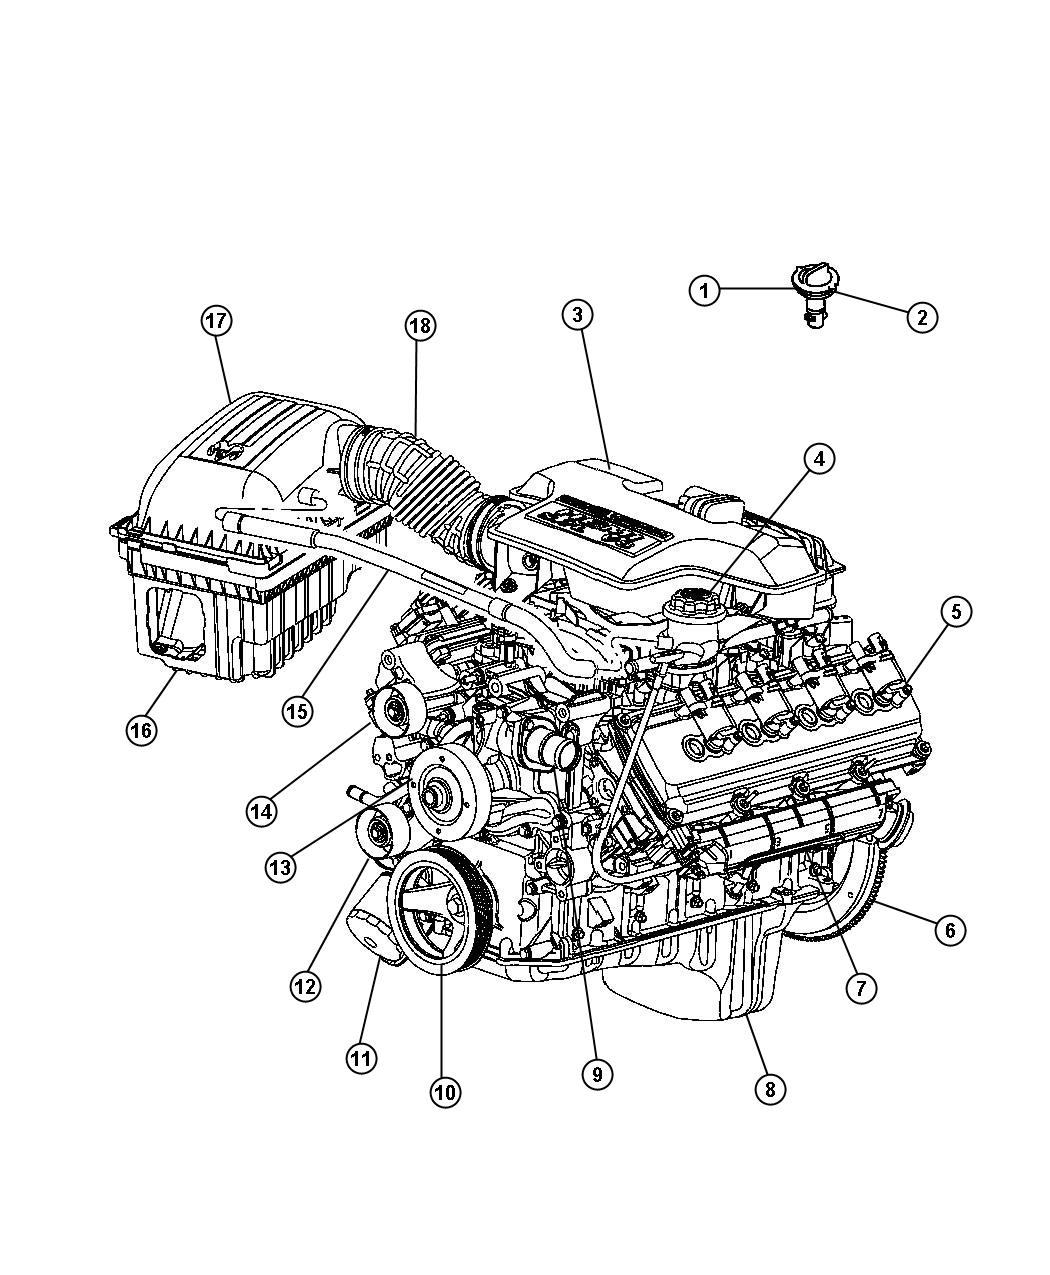 2011 dodge ram 2500 serpentine belt diagram